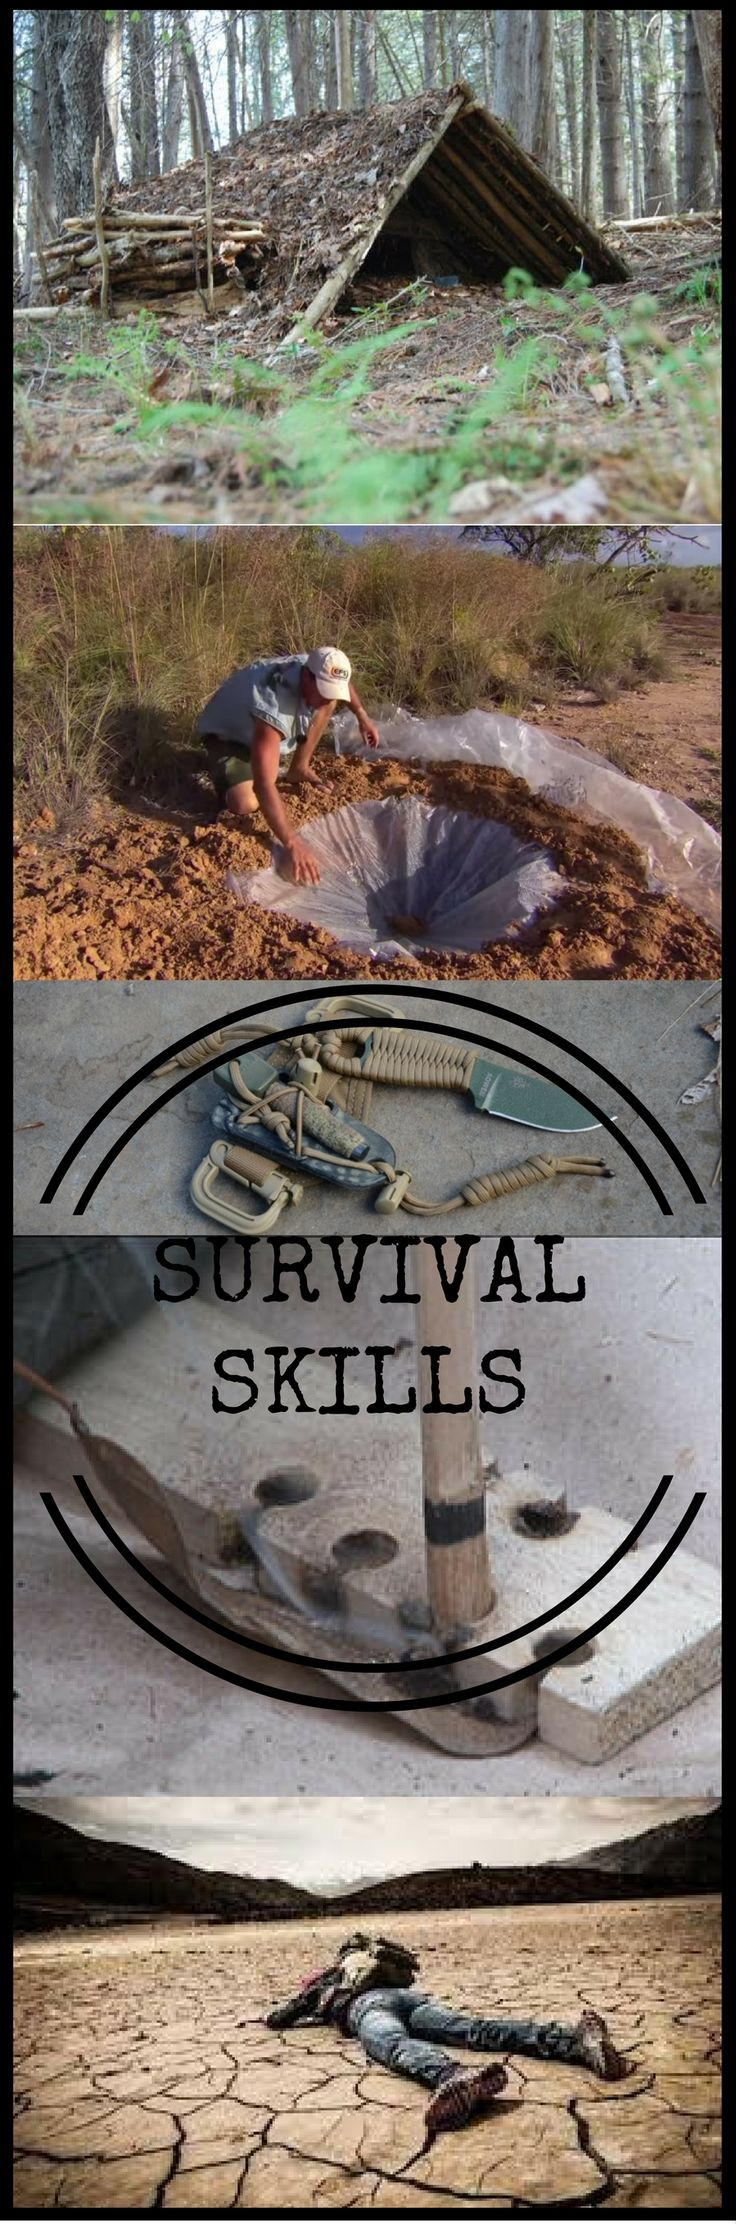 Survival Tips and Techniques: vid.staged.com/88us